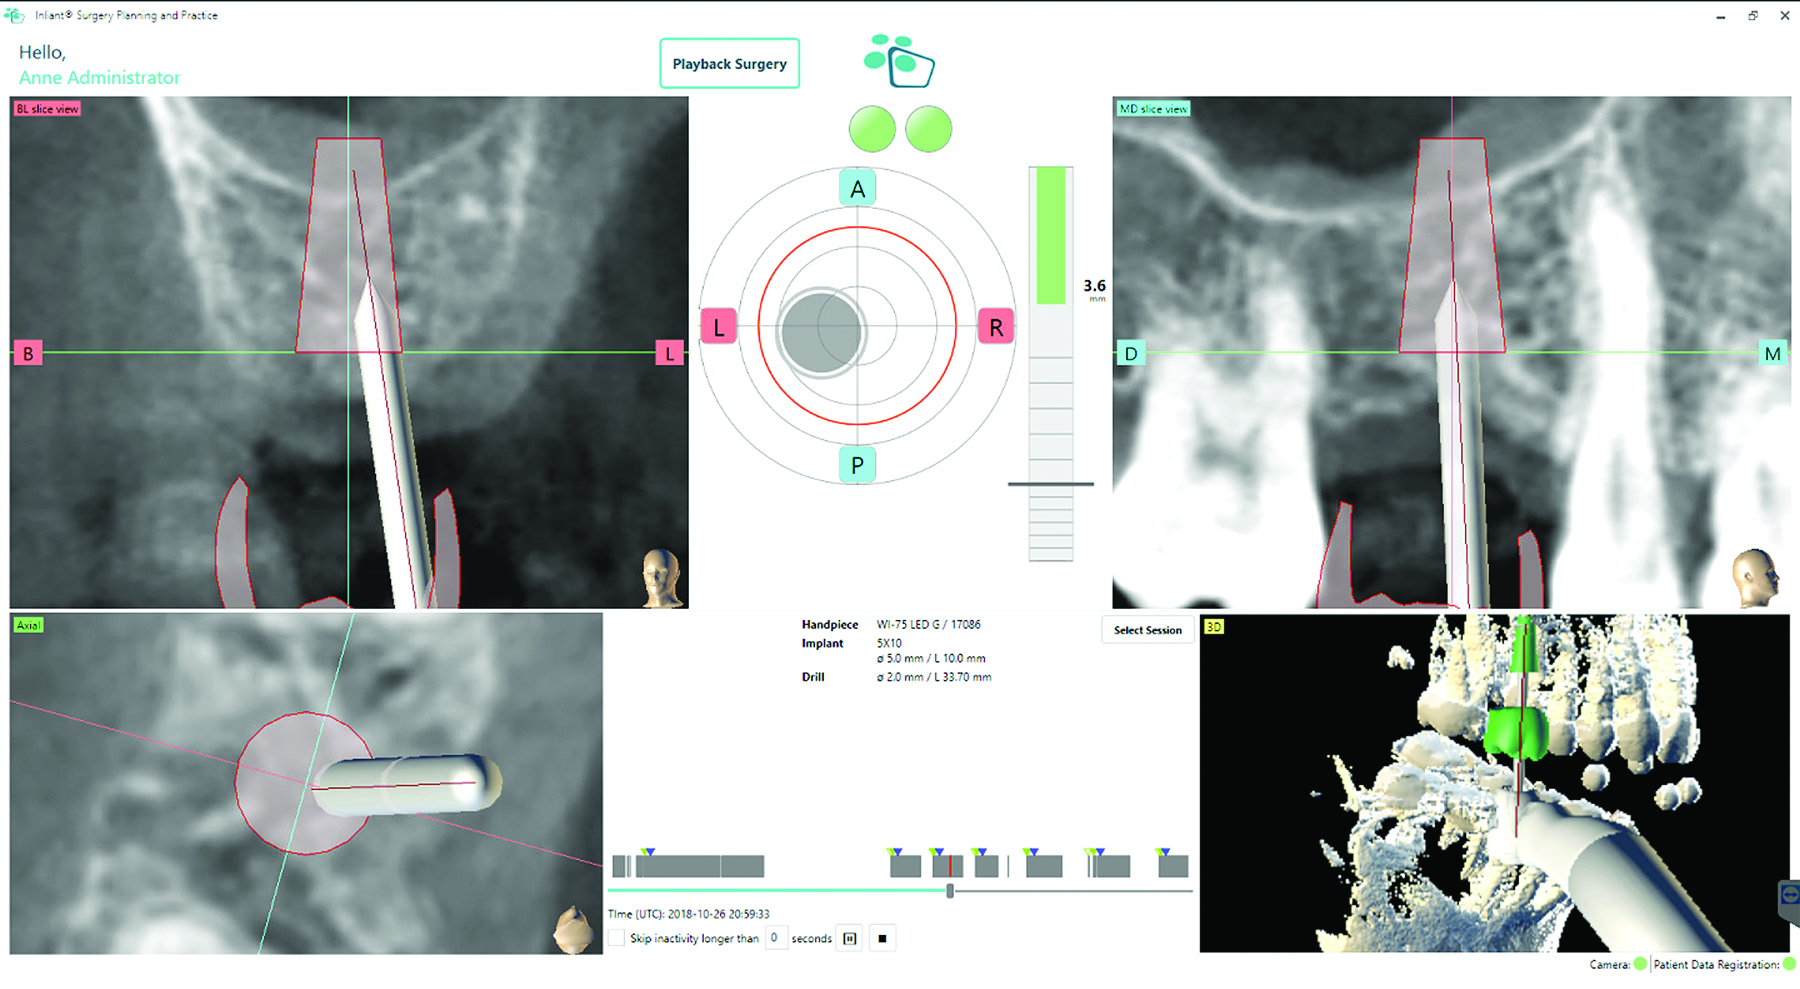 Correcting the osteotomy with dynamic navigation as a visual guide.